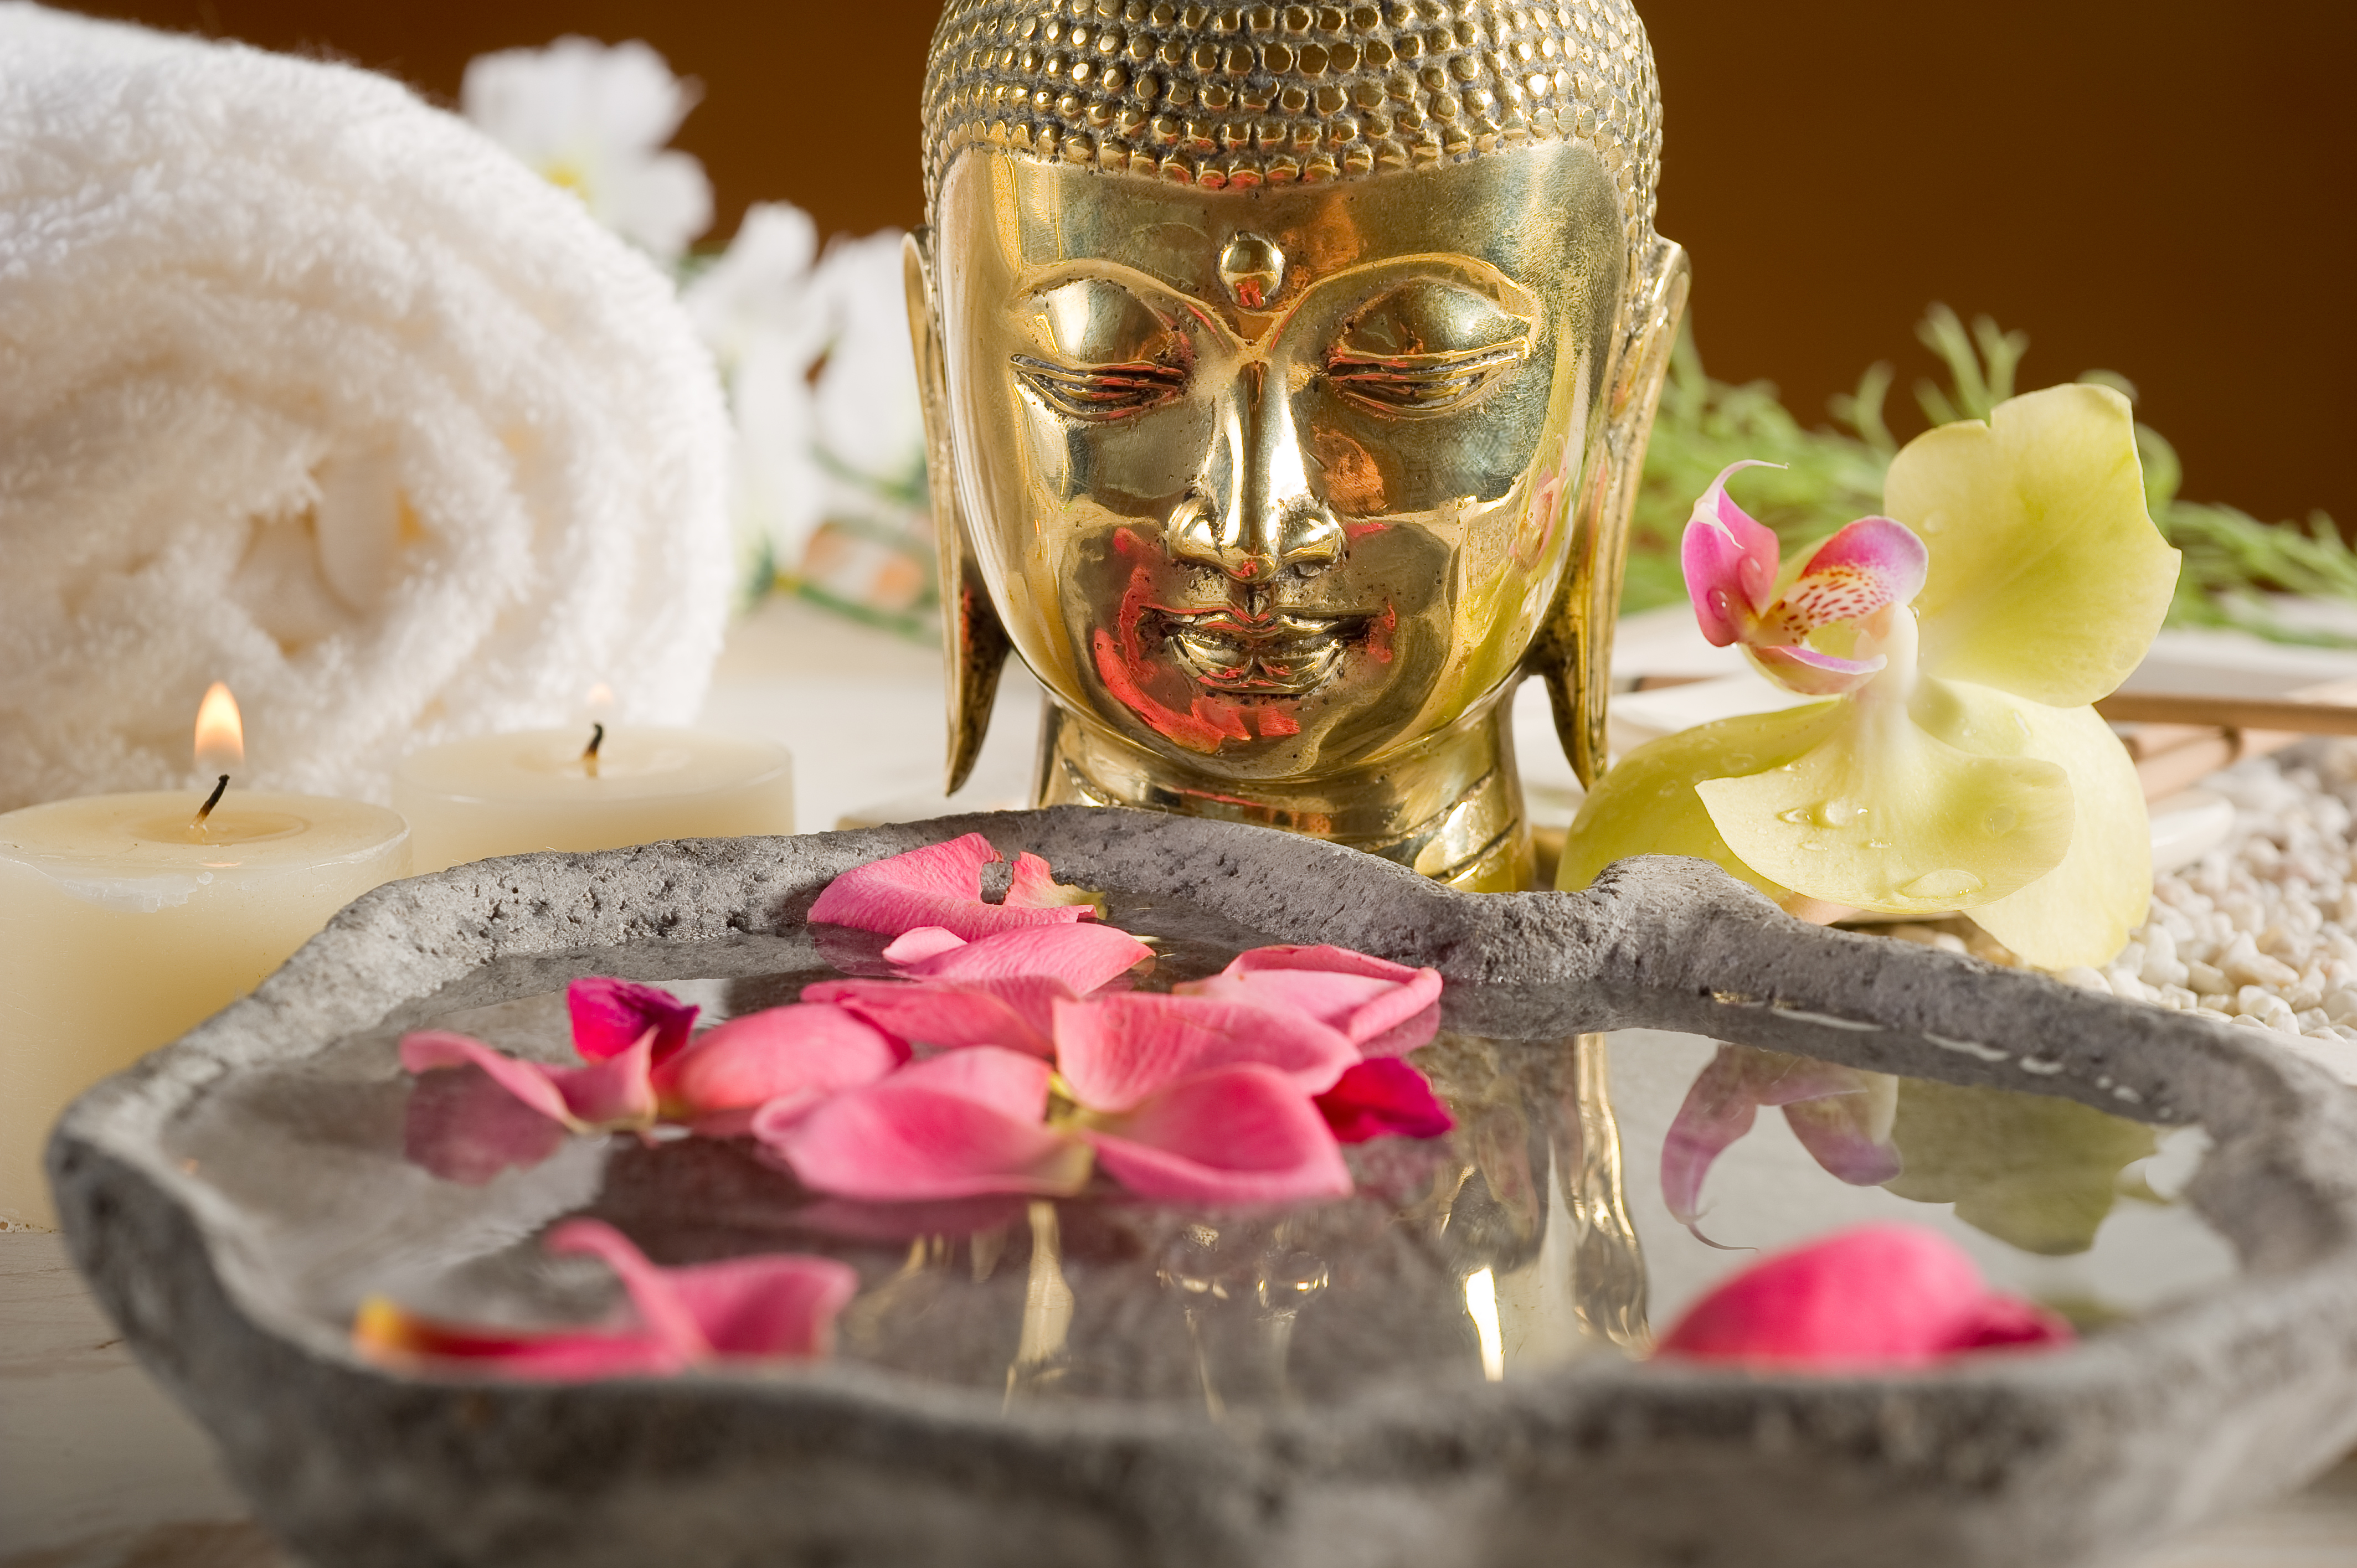 Searching for Happiness? Bathe Yourself In This Spiritual